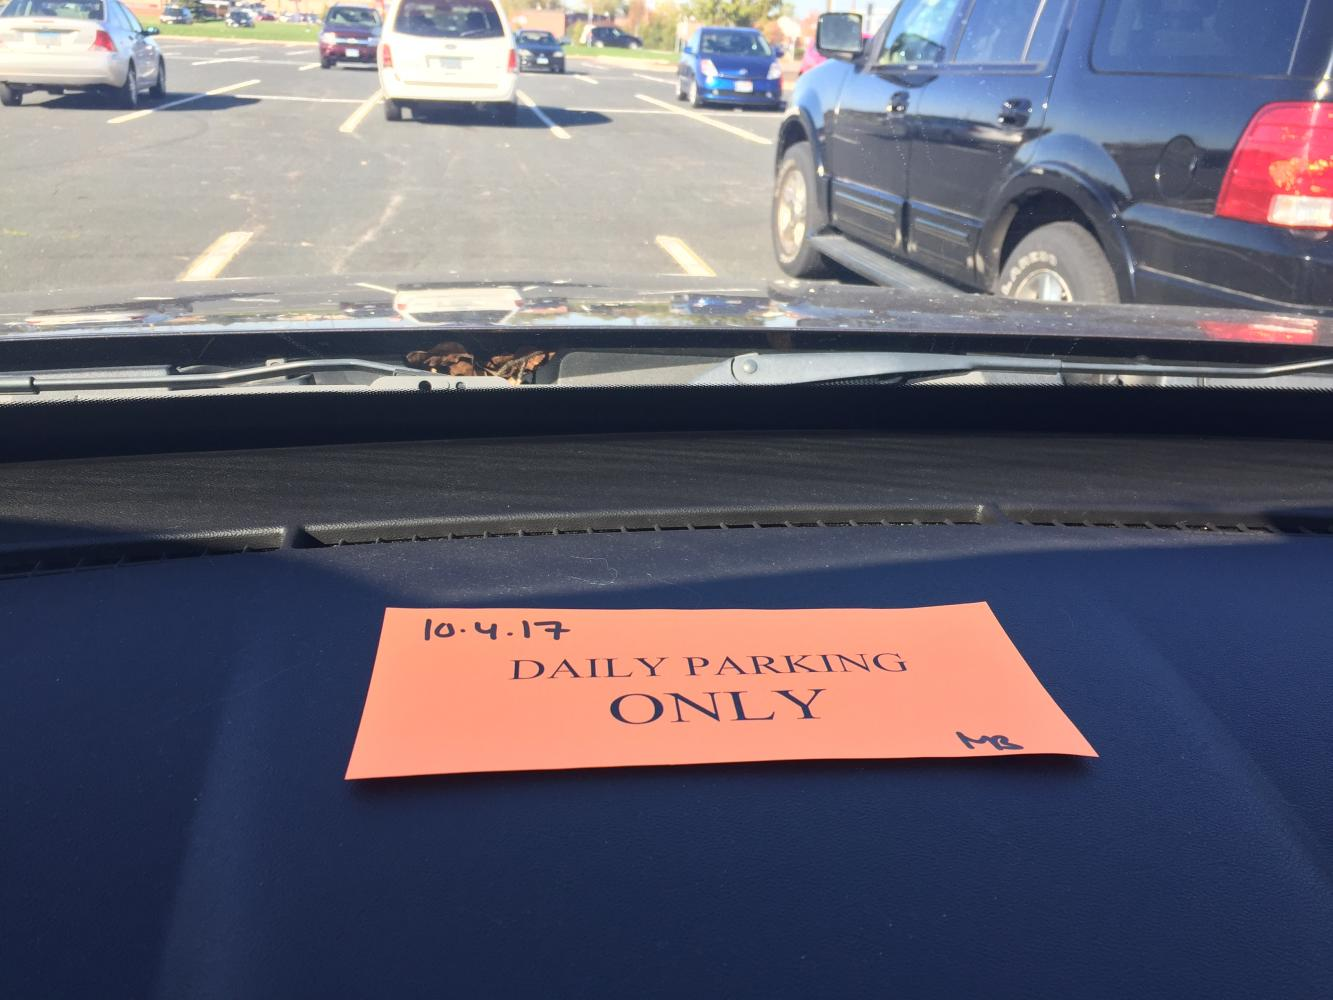 Students either have to cough up the chase for the high priced parking permit or try and find another ride to school.